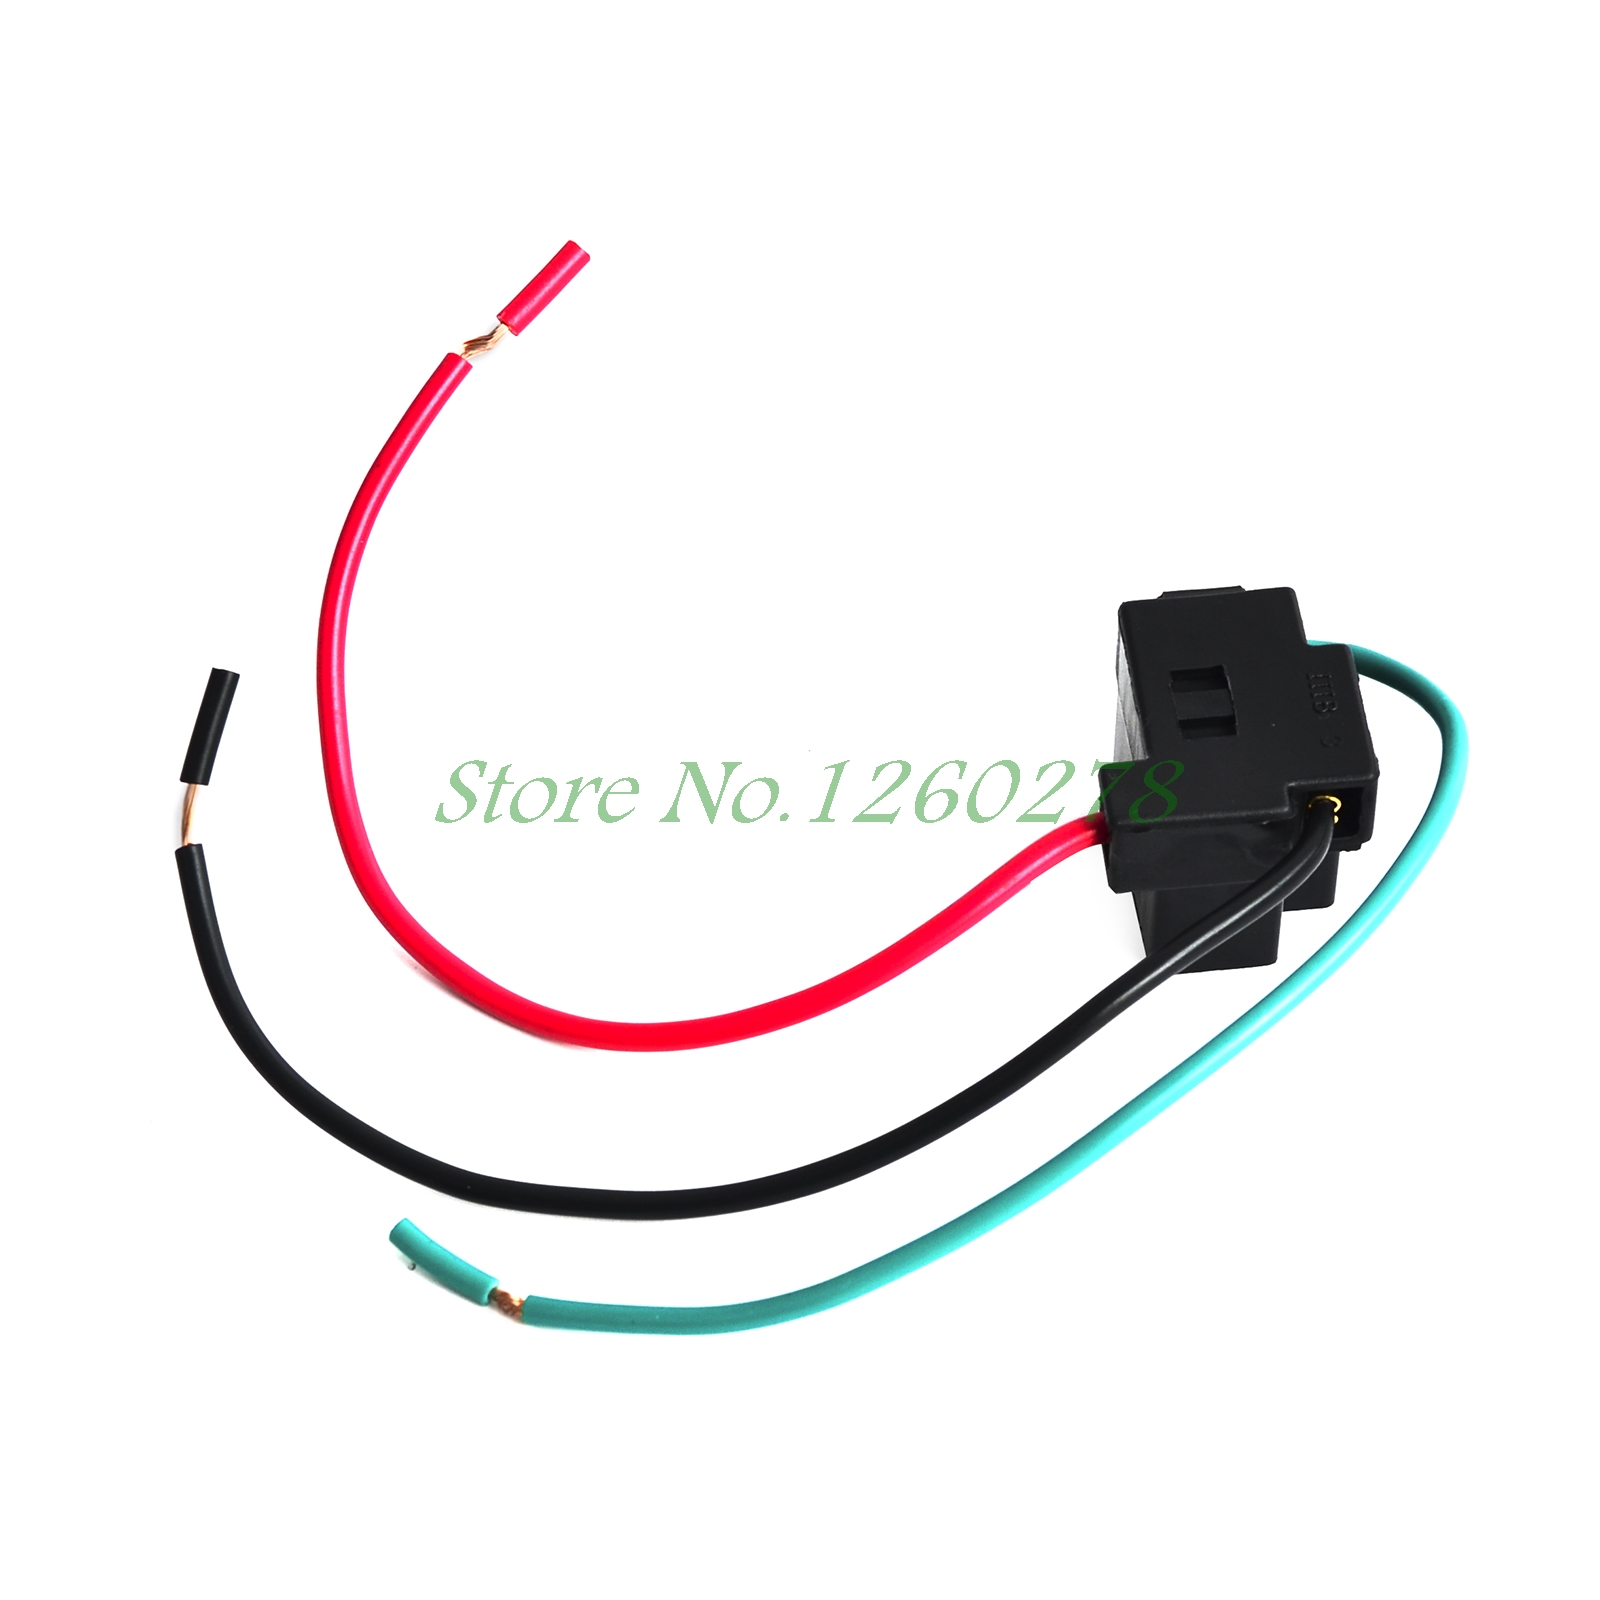 2pcs h4 female adapter wiring harness sockets wire harness connector for headlights in car headlight bulbs led from automobiles motorcycles on  [ 1600 x 1600 Pixel ]